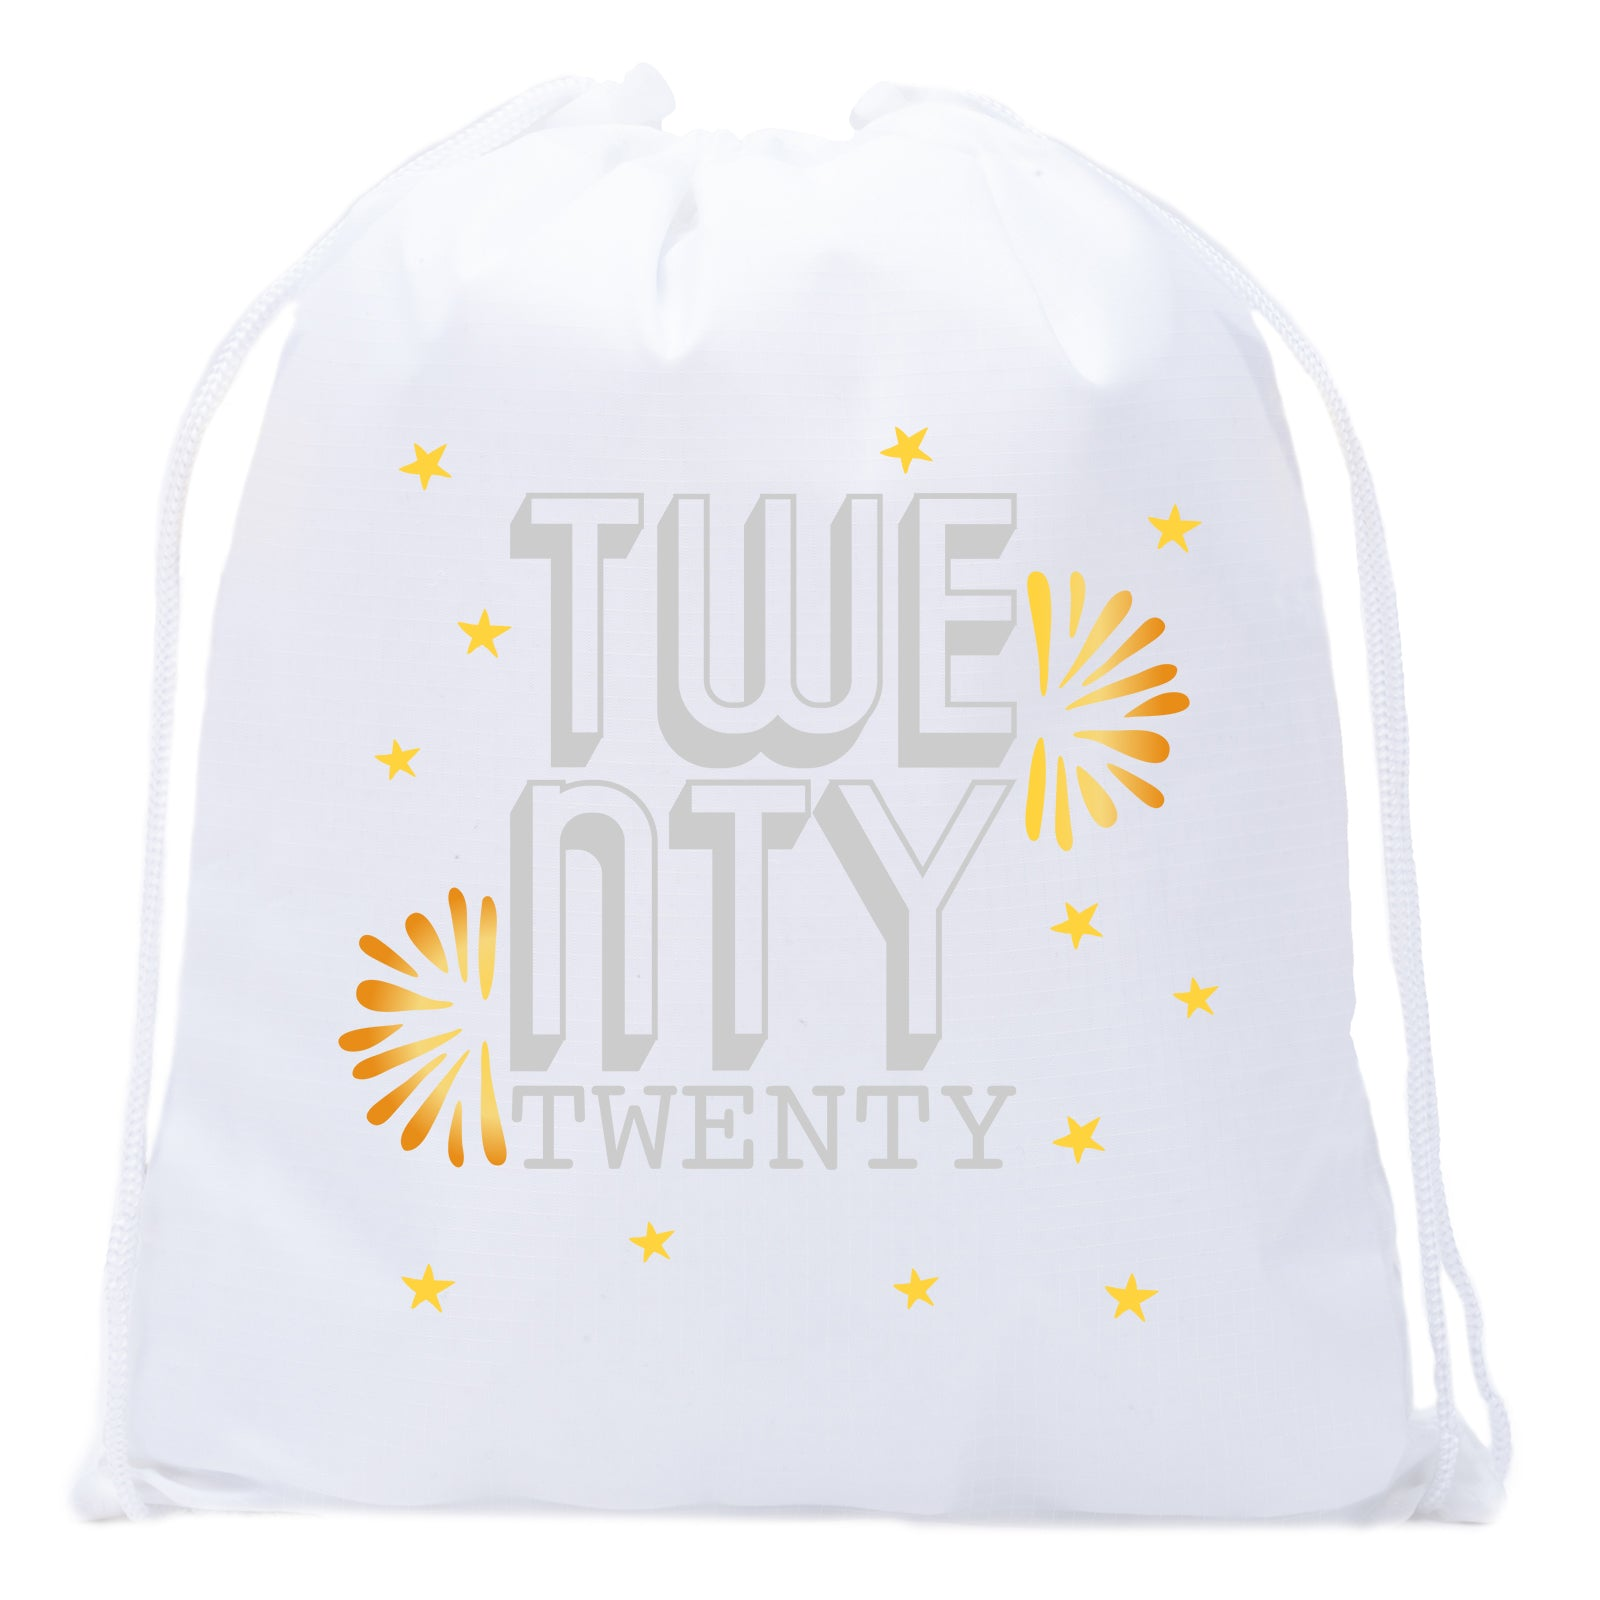 Accessory - New Year's Eve Party Goody Bags, Table Top New Years Decorations, 2019 Gift Bags - Twenty